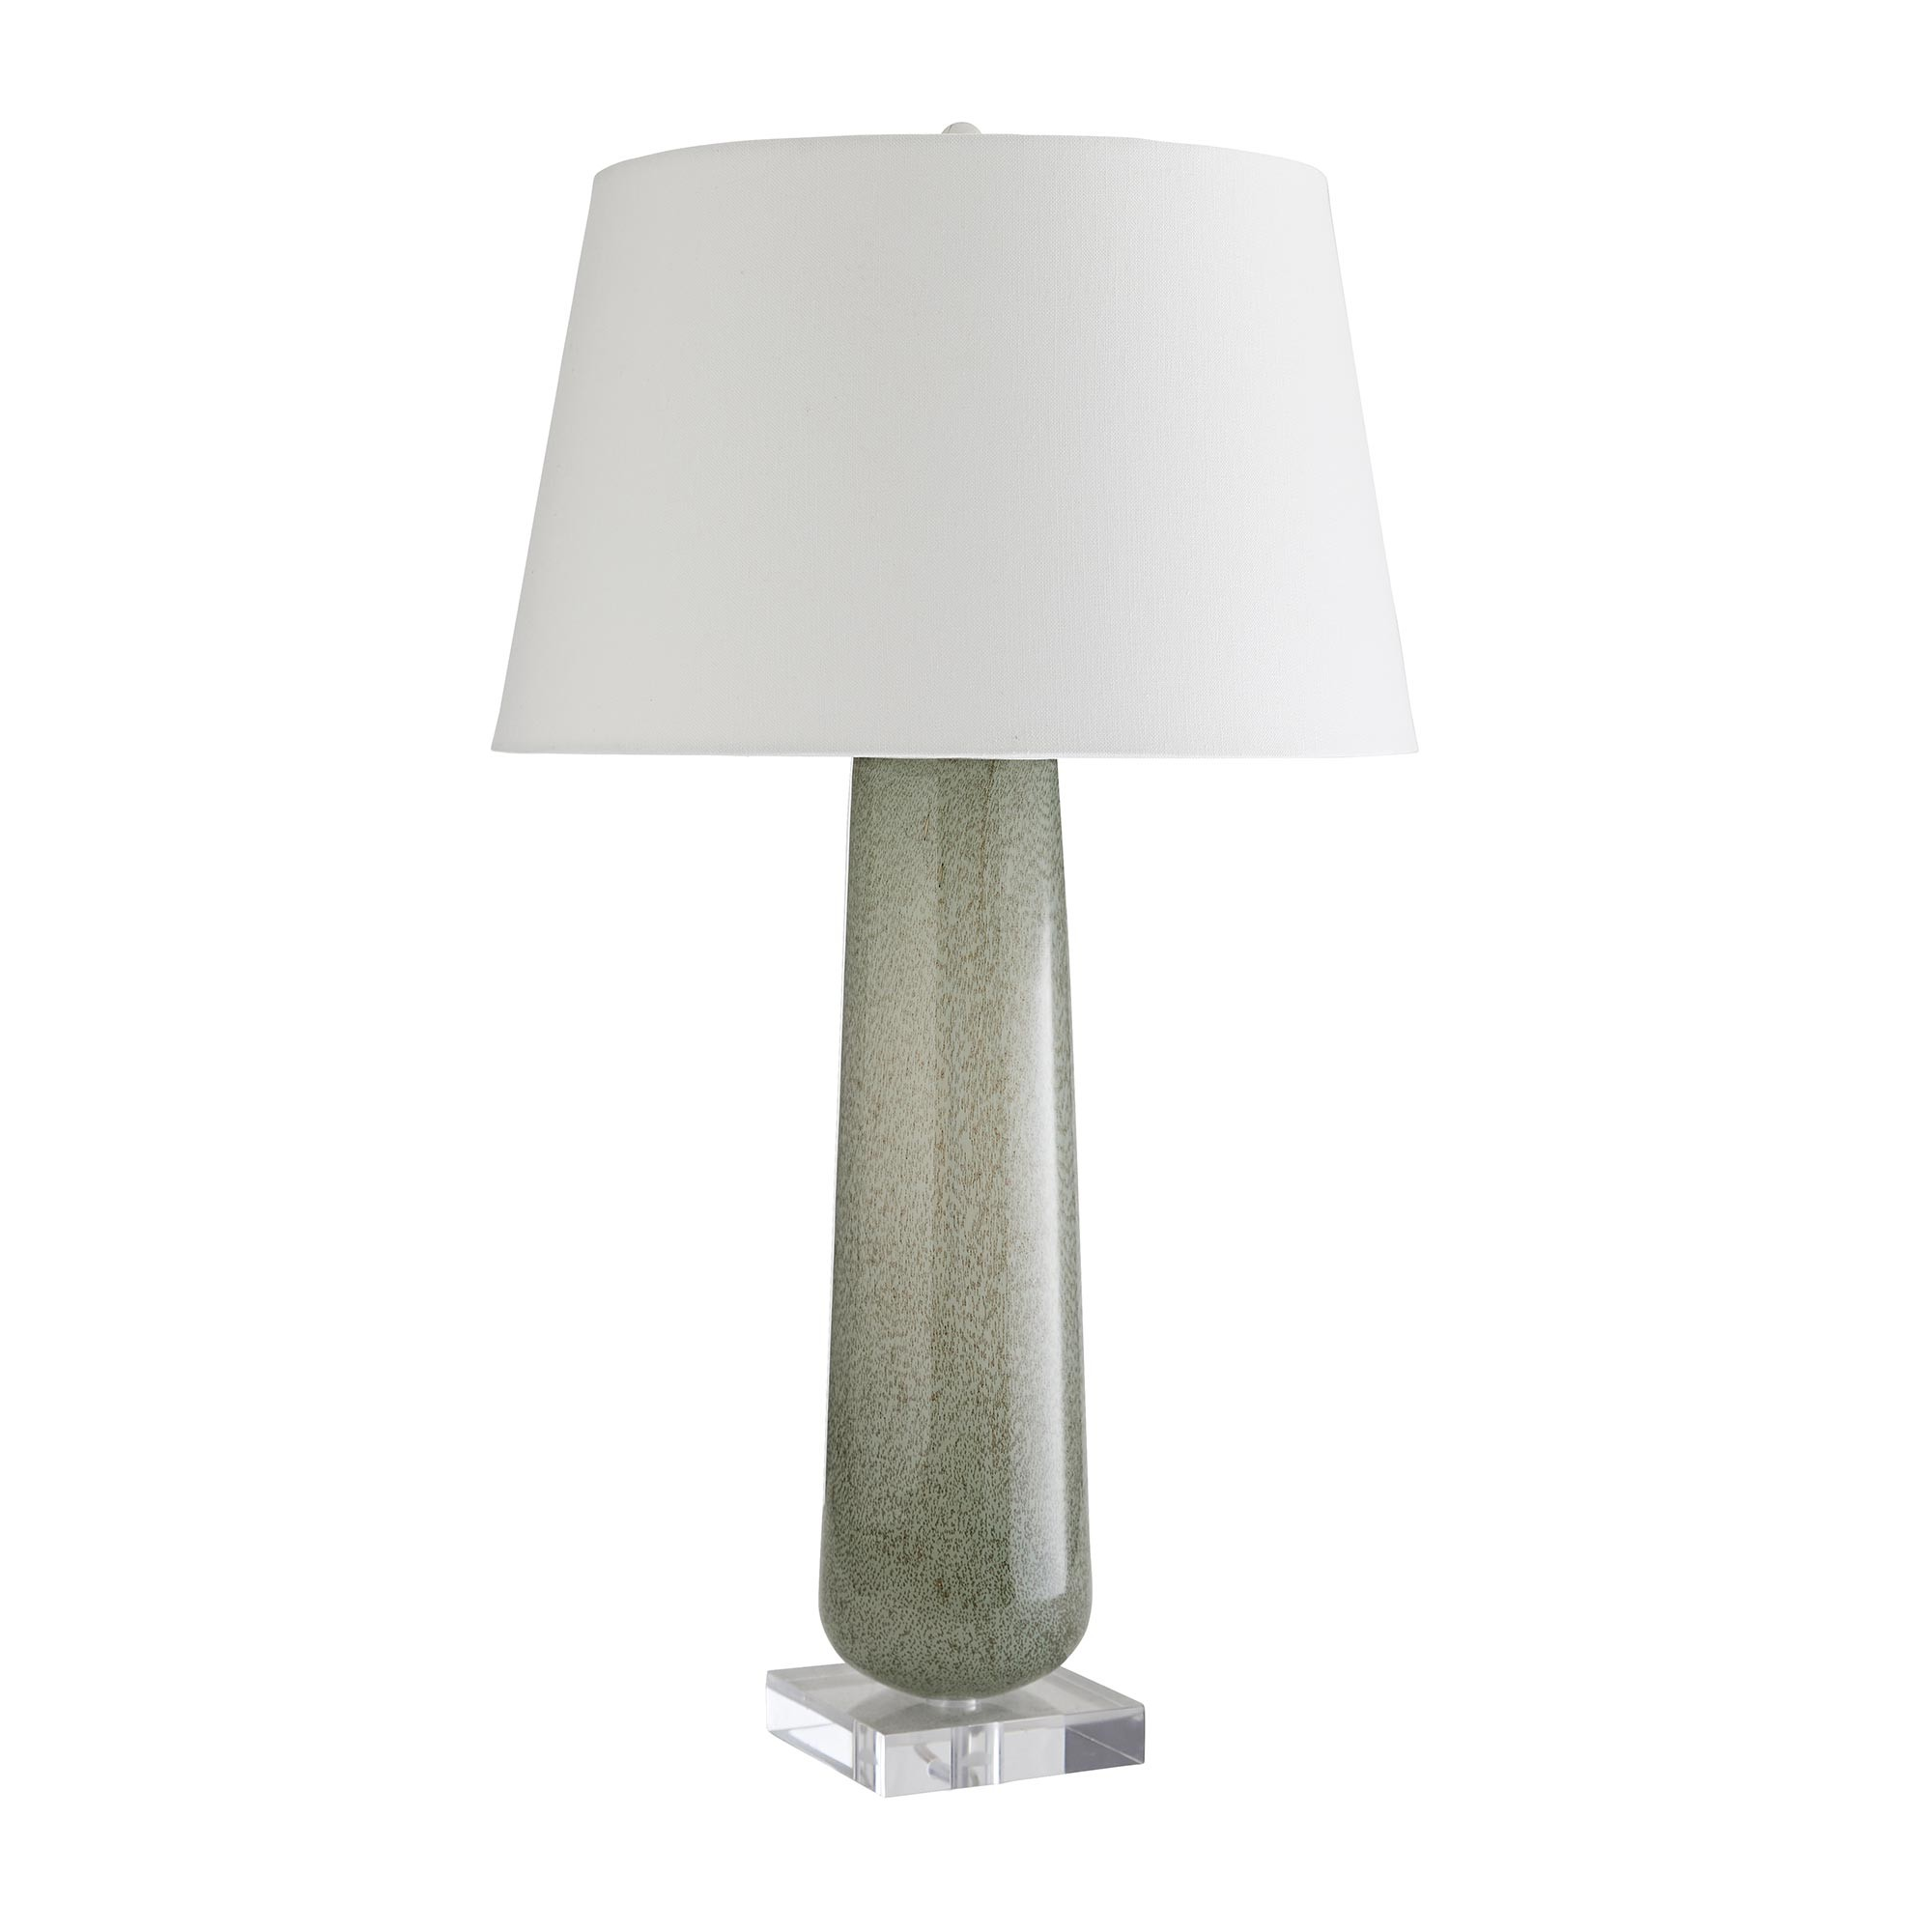 Green Art Glass Lamp-$275.00